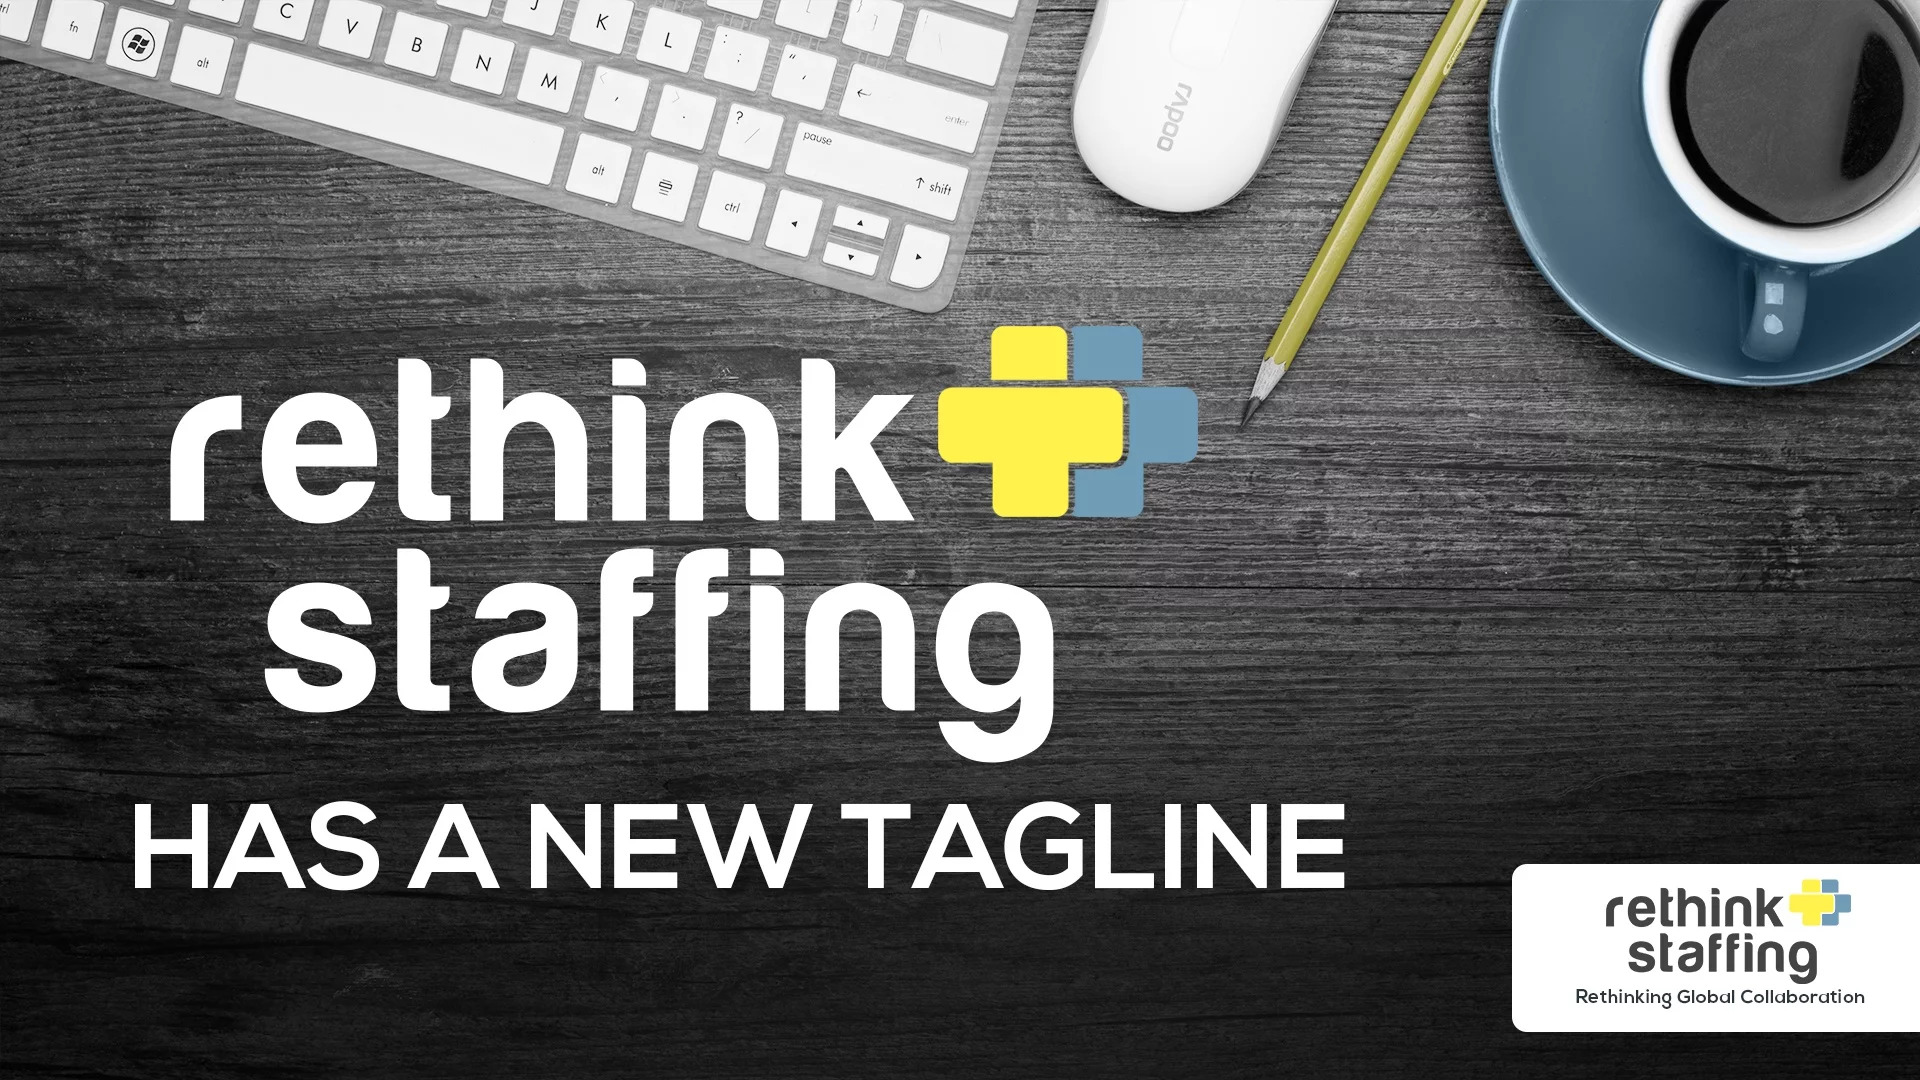 Rethink Staffing has a New Tagline